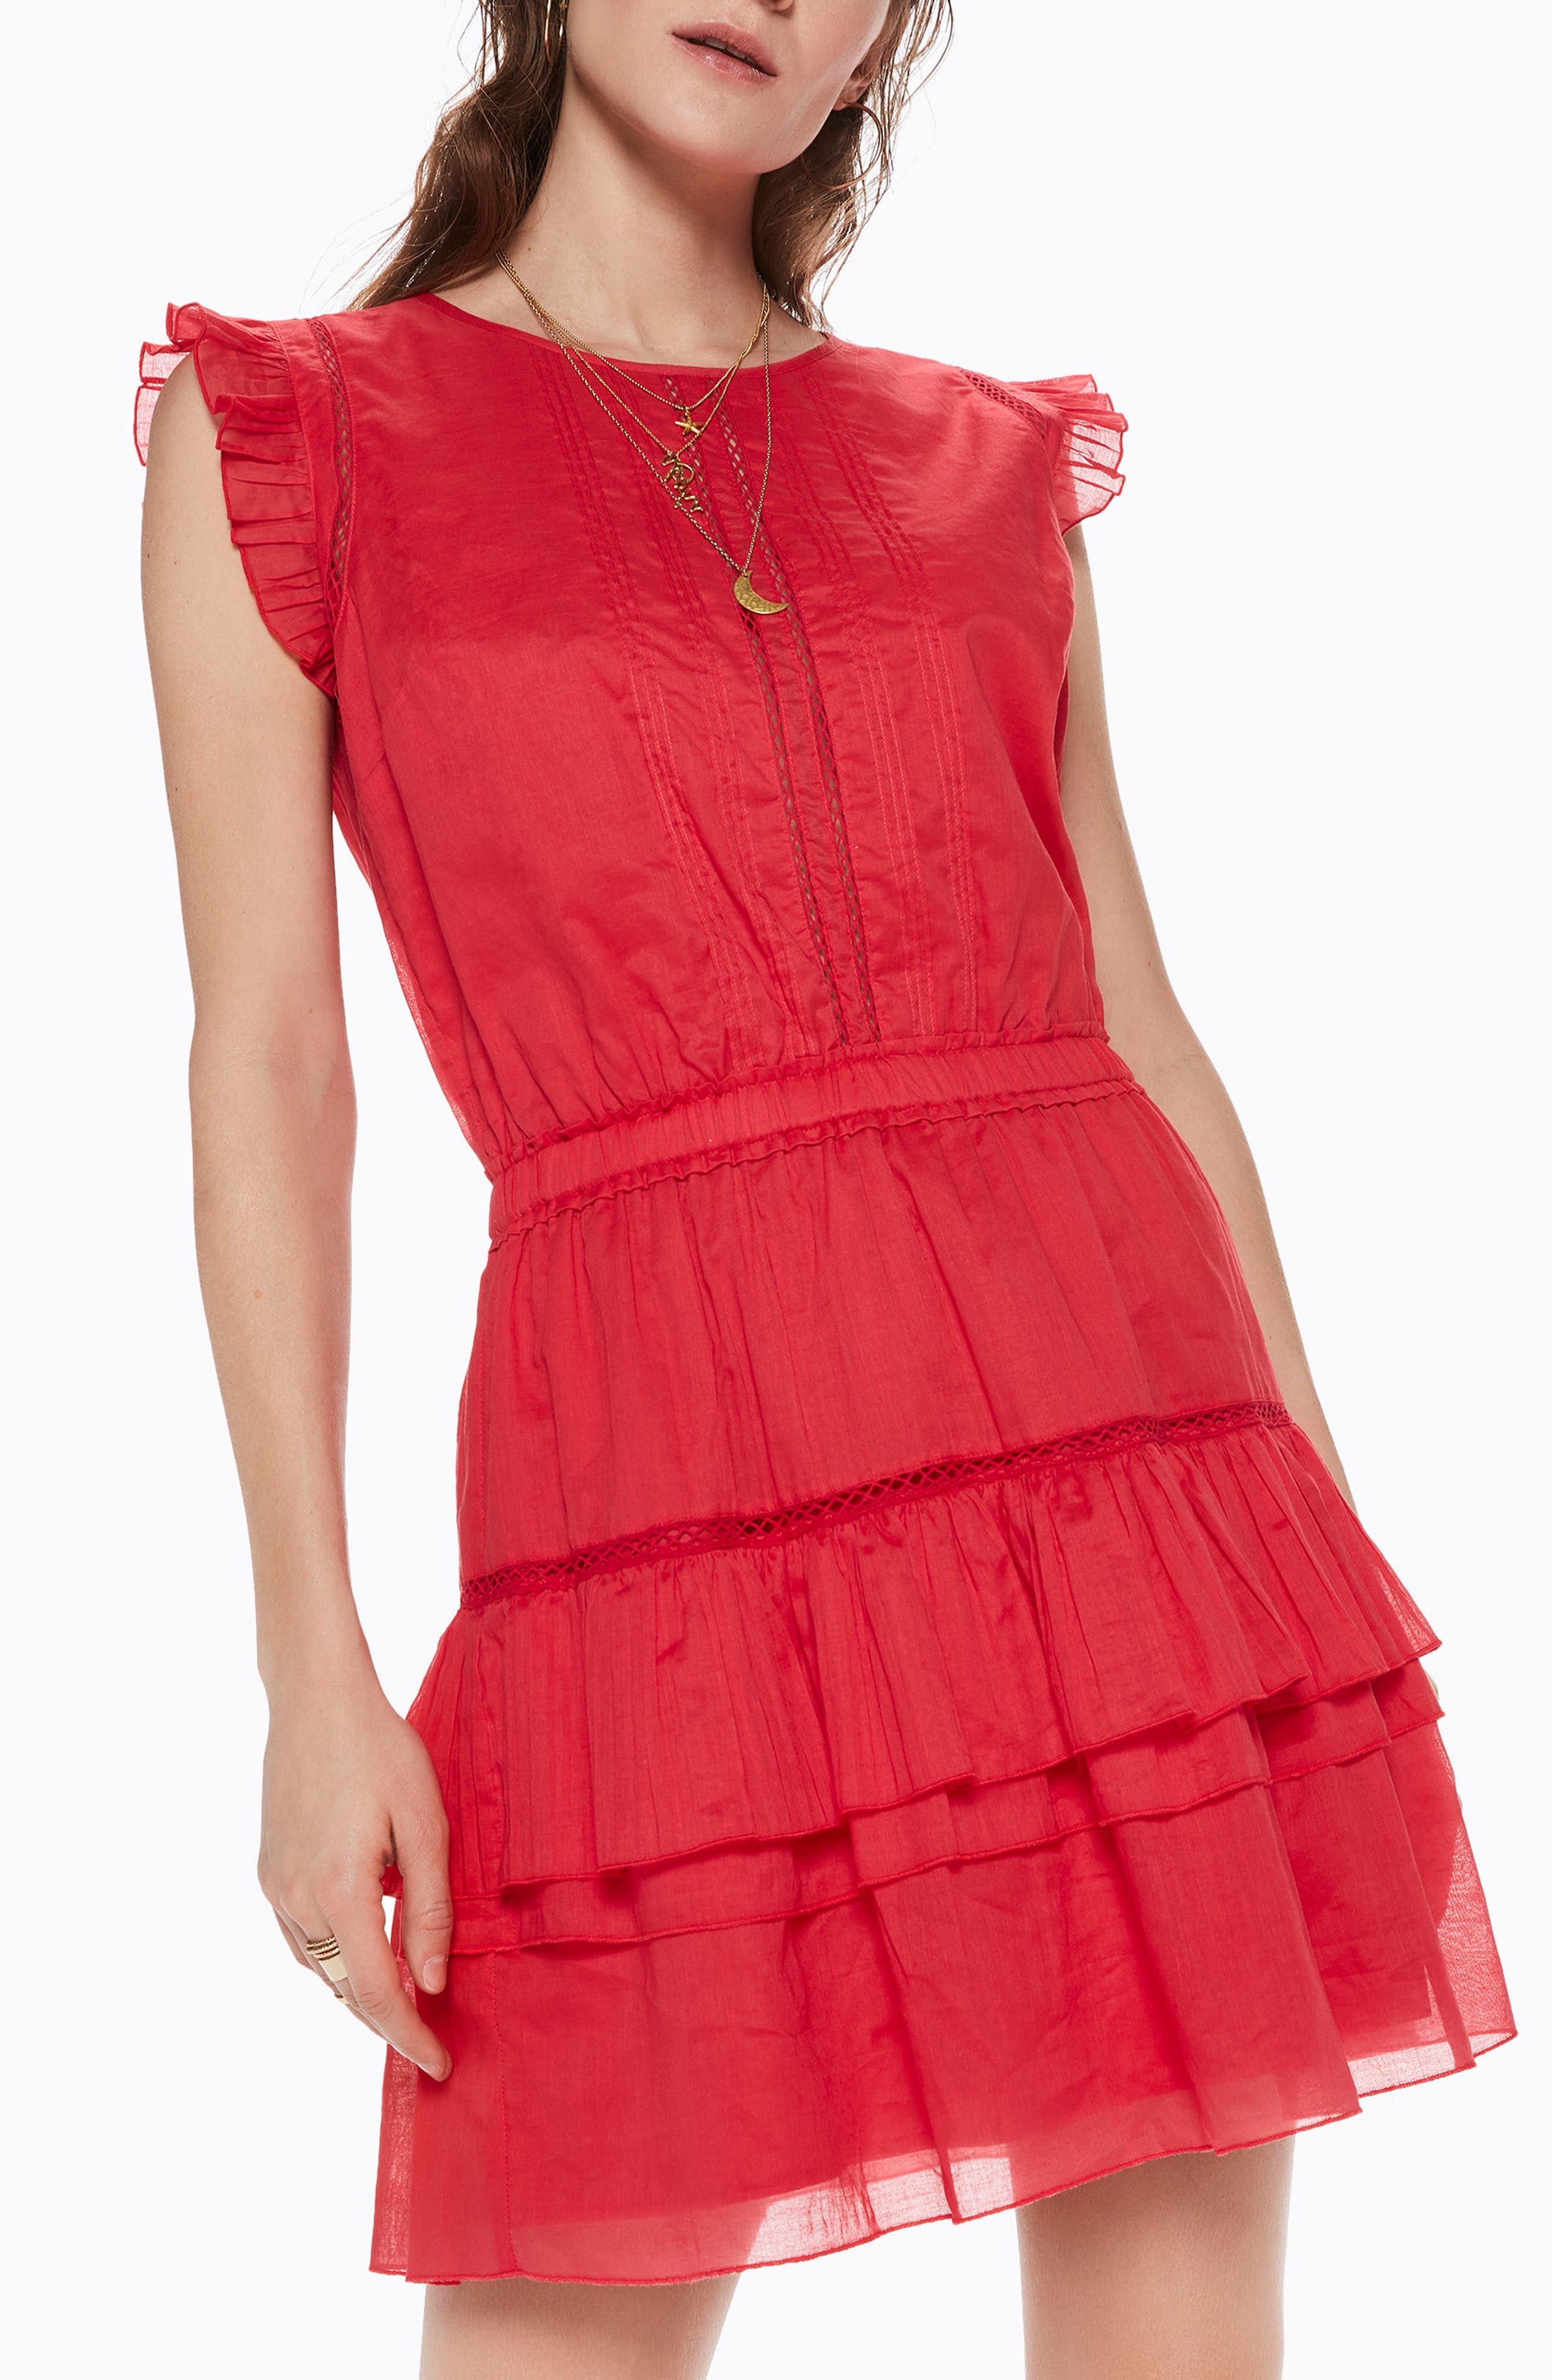 SCOTCH & SODA Tiered Sleeveless Dress, Main, color, 600